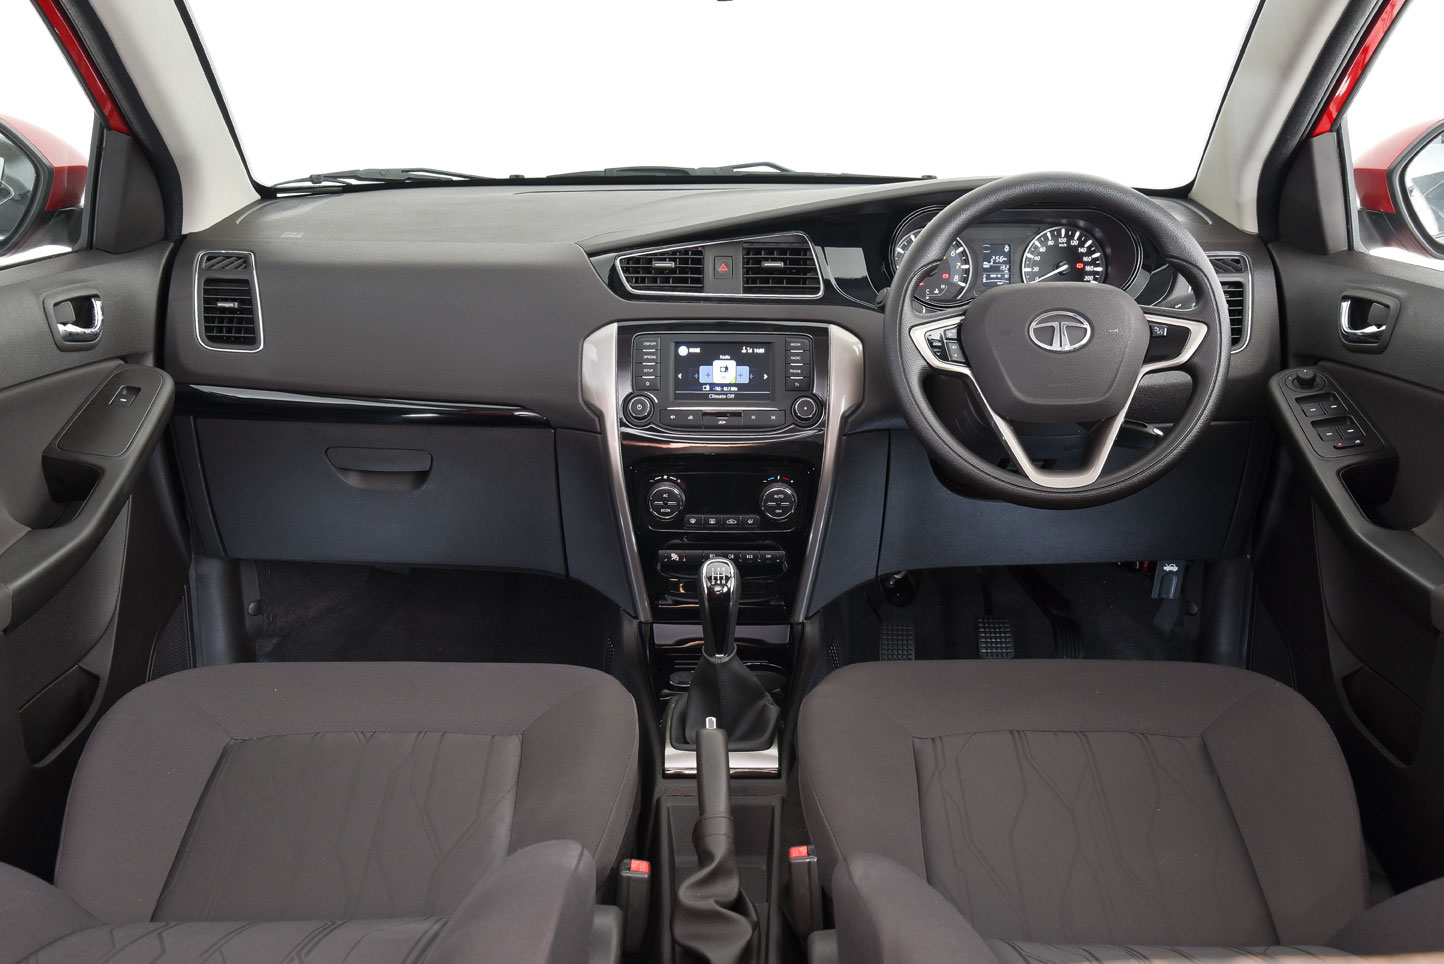 The TATA Bolt has taken the greatest leap forward. Picture: Supplied